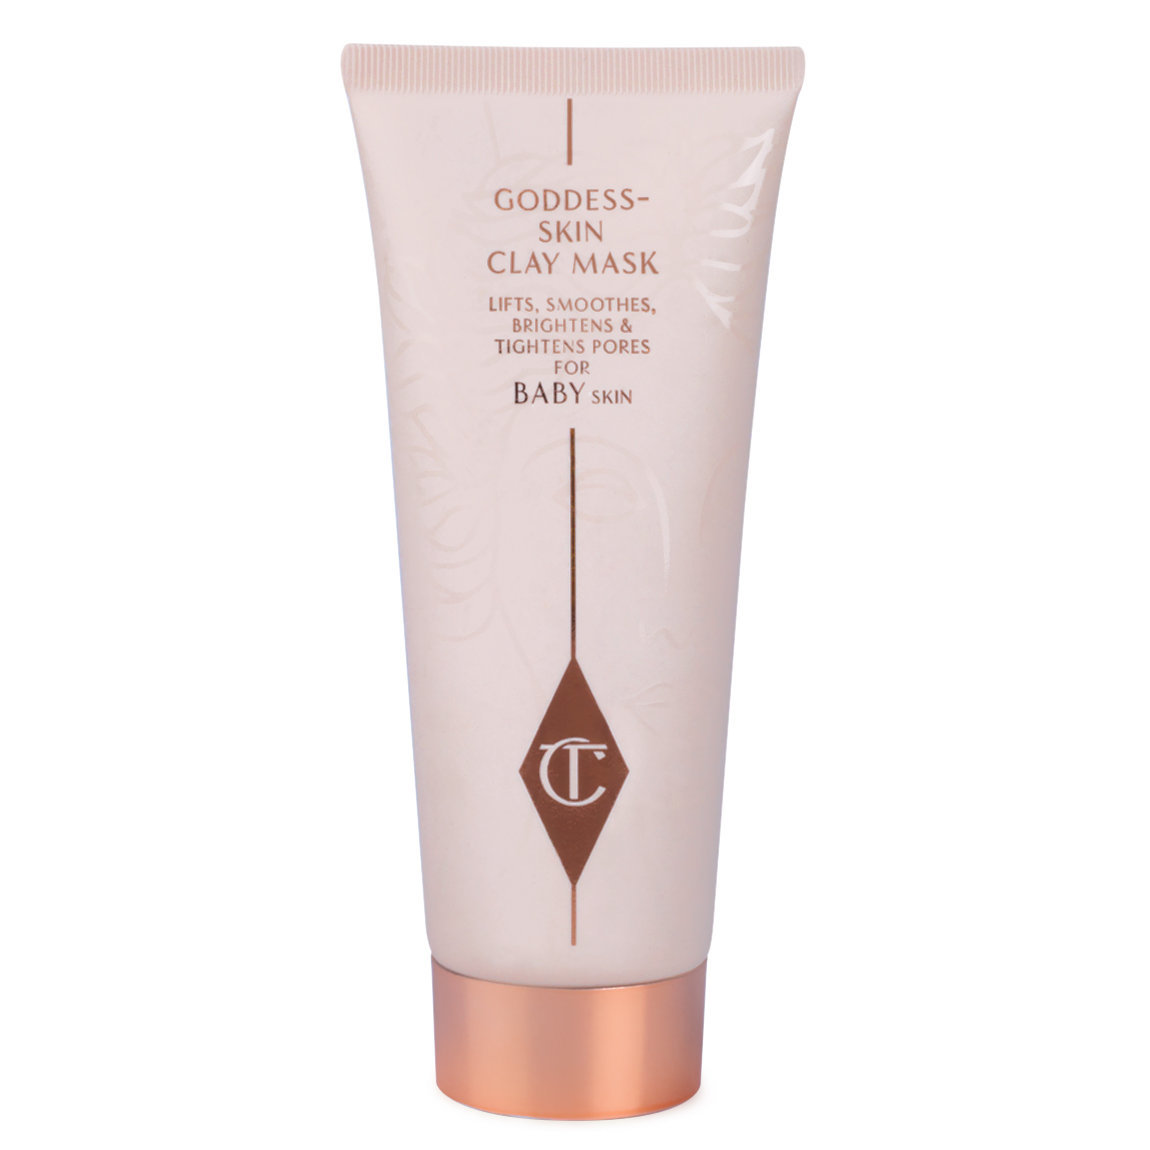 Charlotte Tilbury Goddess Skin Clay Mask product smear.